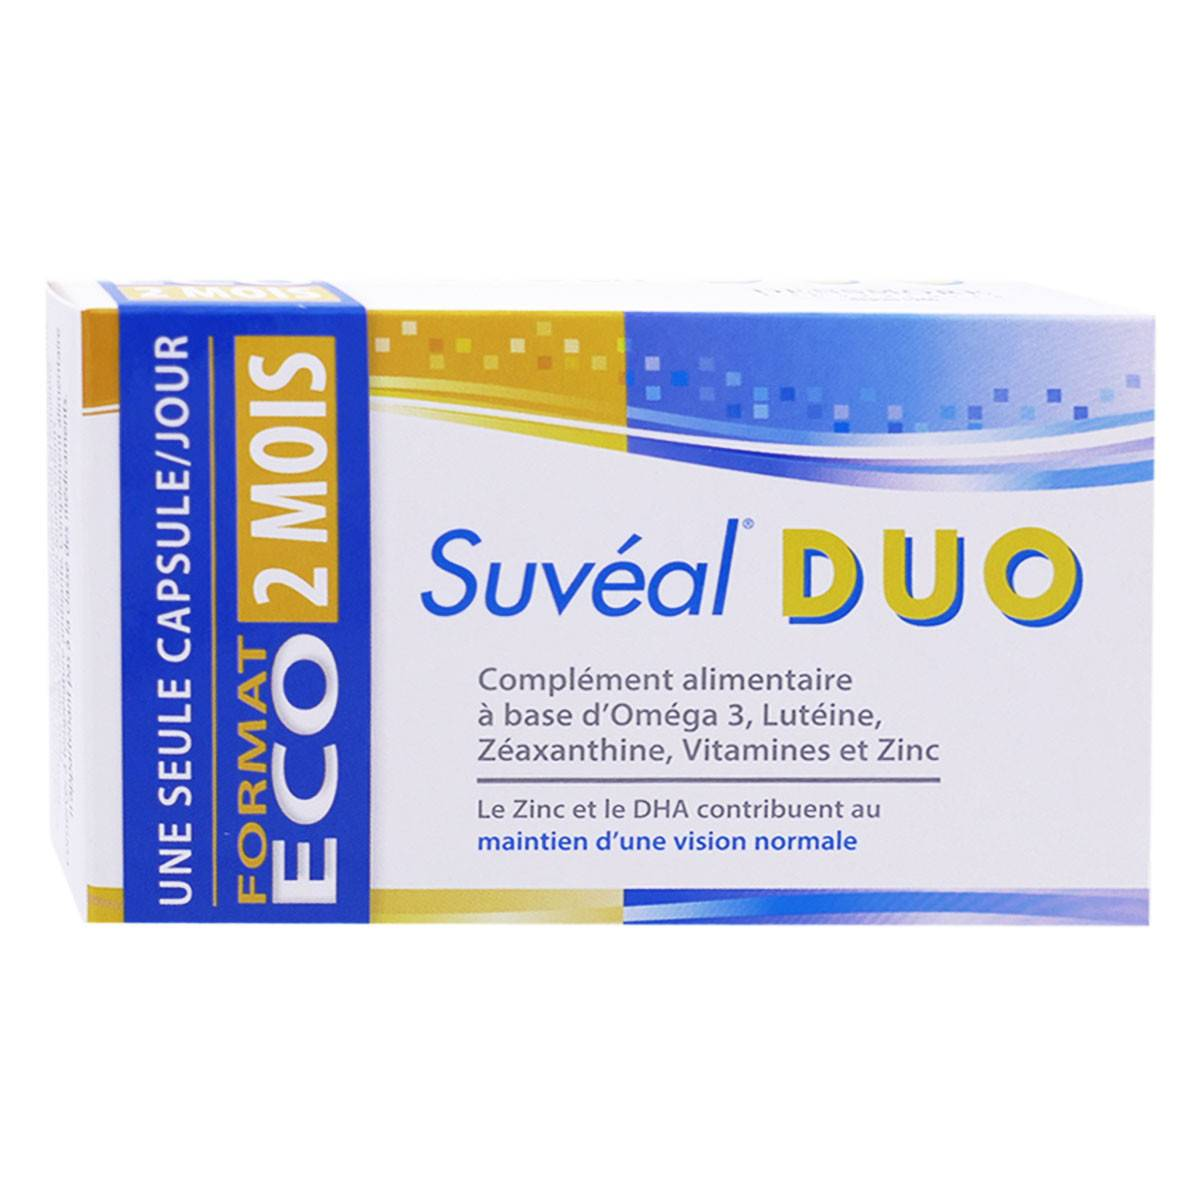 DENSMORE Suveal duo complement alimentaire visee oculaire